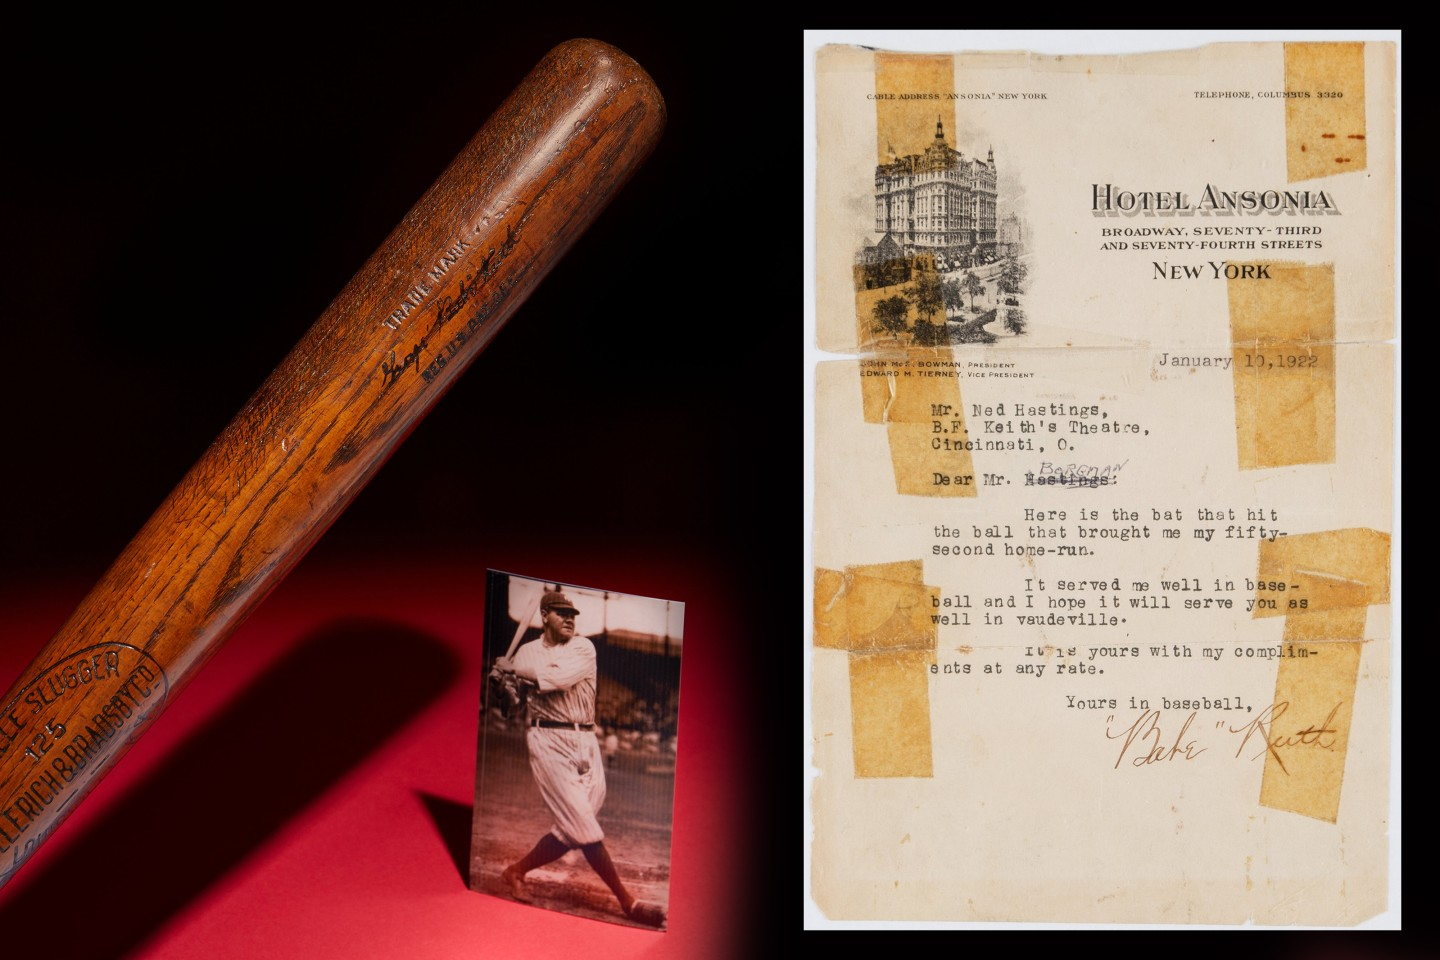 Babe Ruth 1921 Baseball Bat | Auction House: Heritage Auctions | Price fetched: $930,000 | Auctioned: May 9, 2020